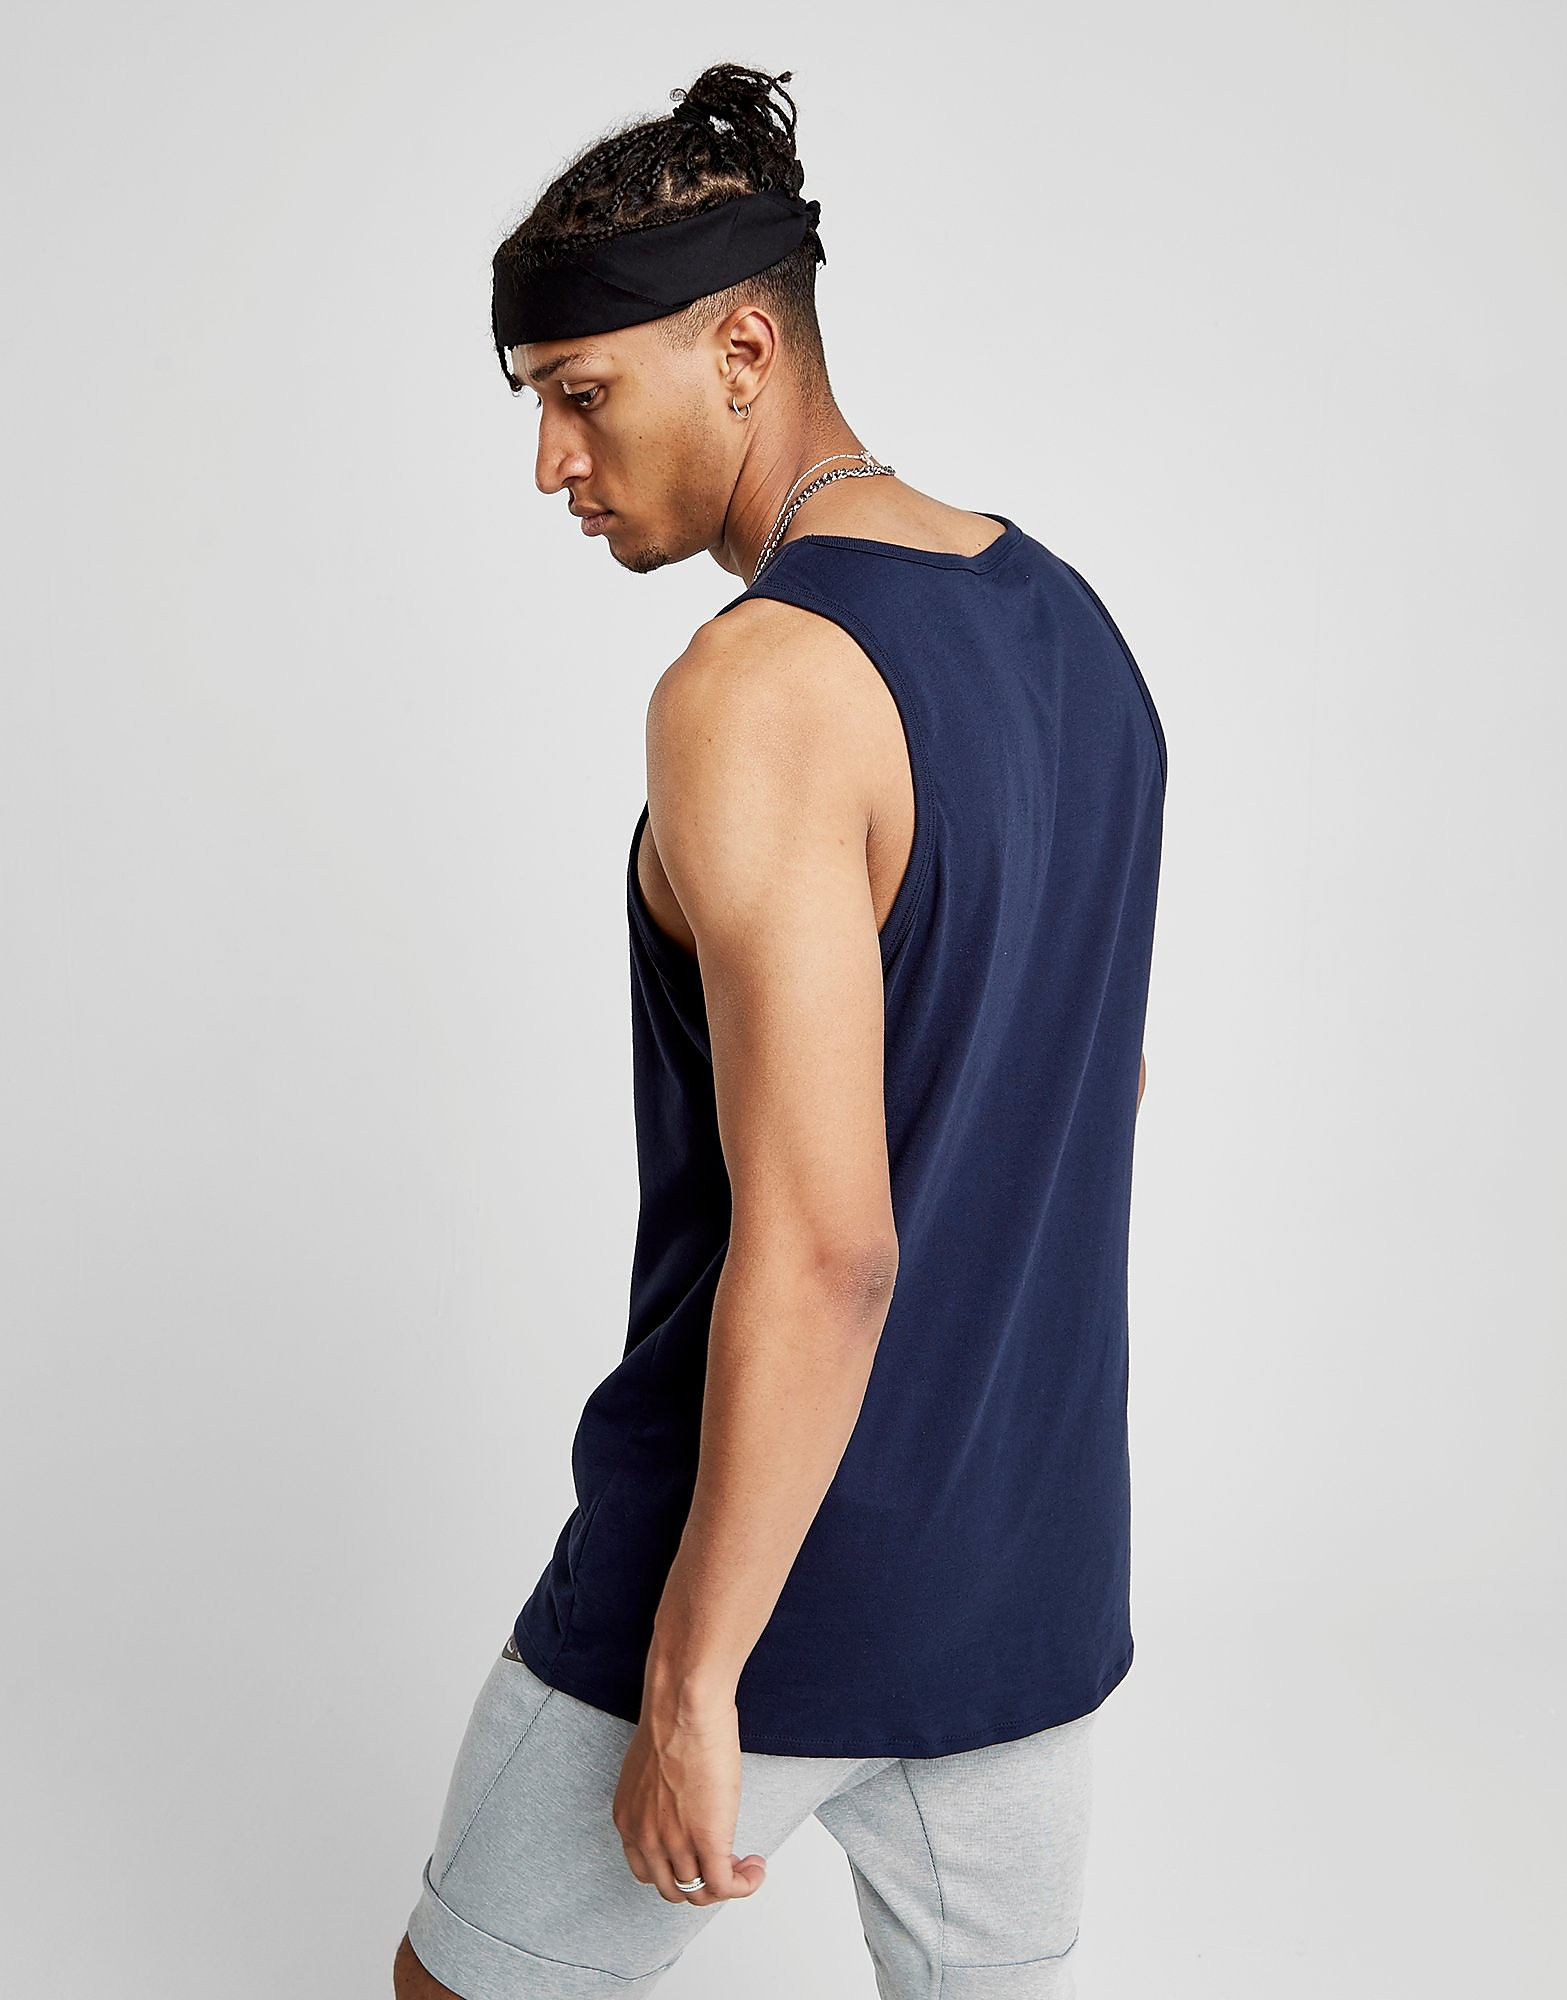 Nike Top Foundation Tank